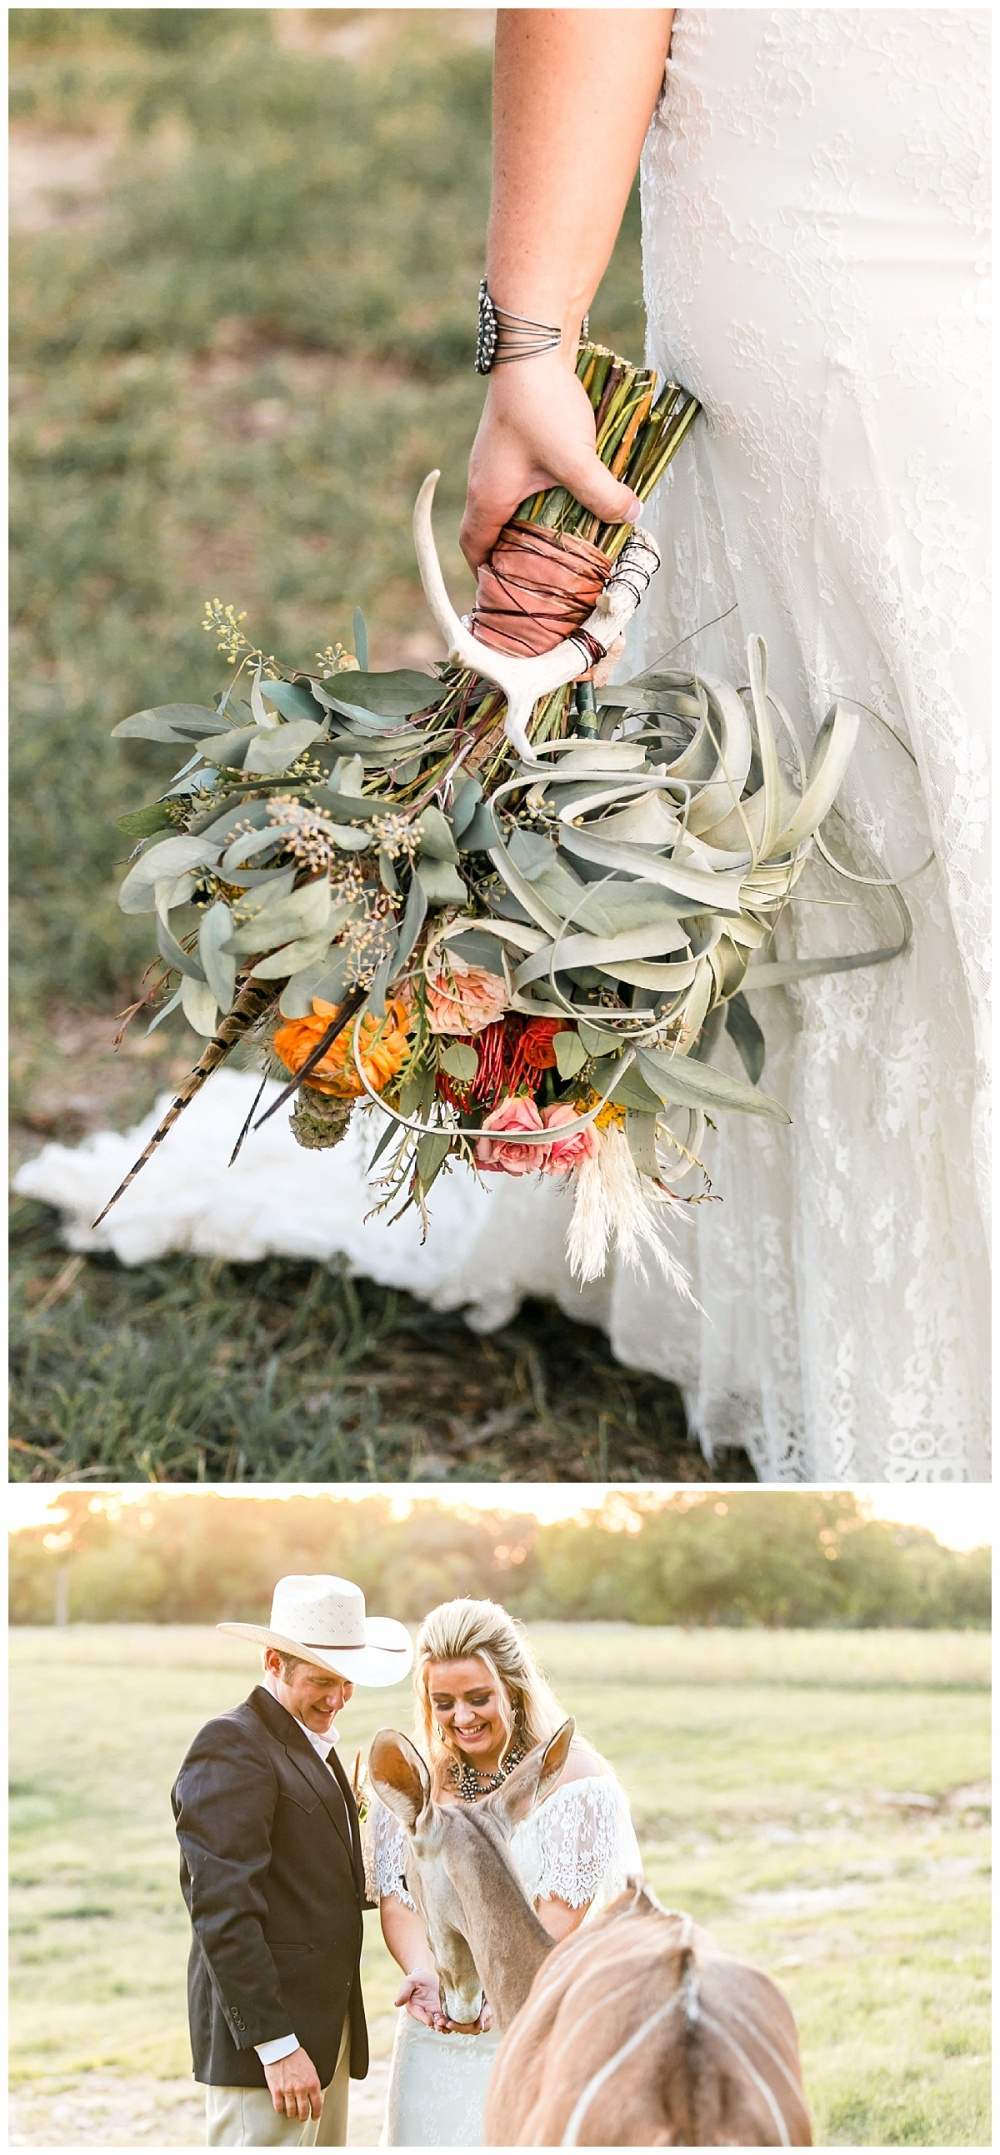 Texas-Wedding-Photographer-Braded-T-Ranch-Kendalia-Bride-Groom-Southwestern-Style-Carly-Barton-Photography-Vogt_0055.jpg